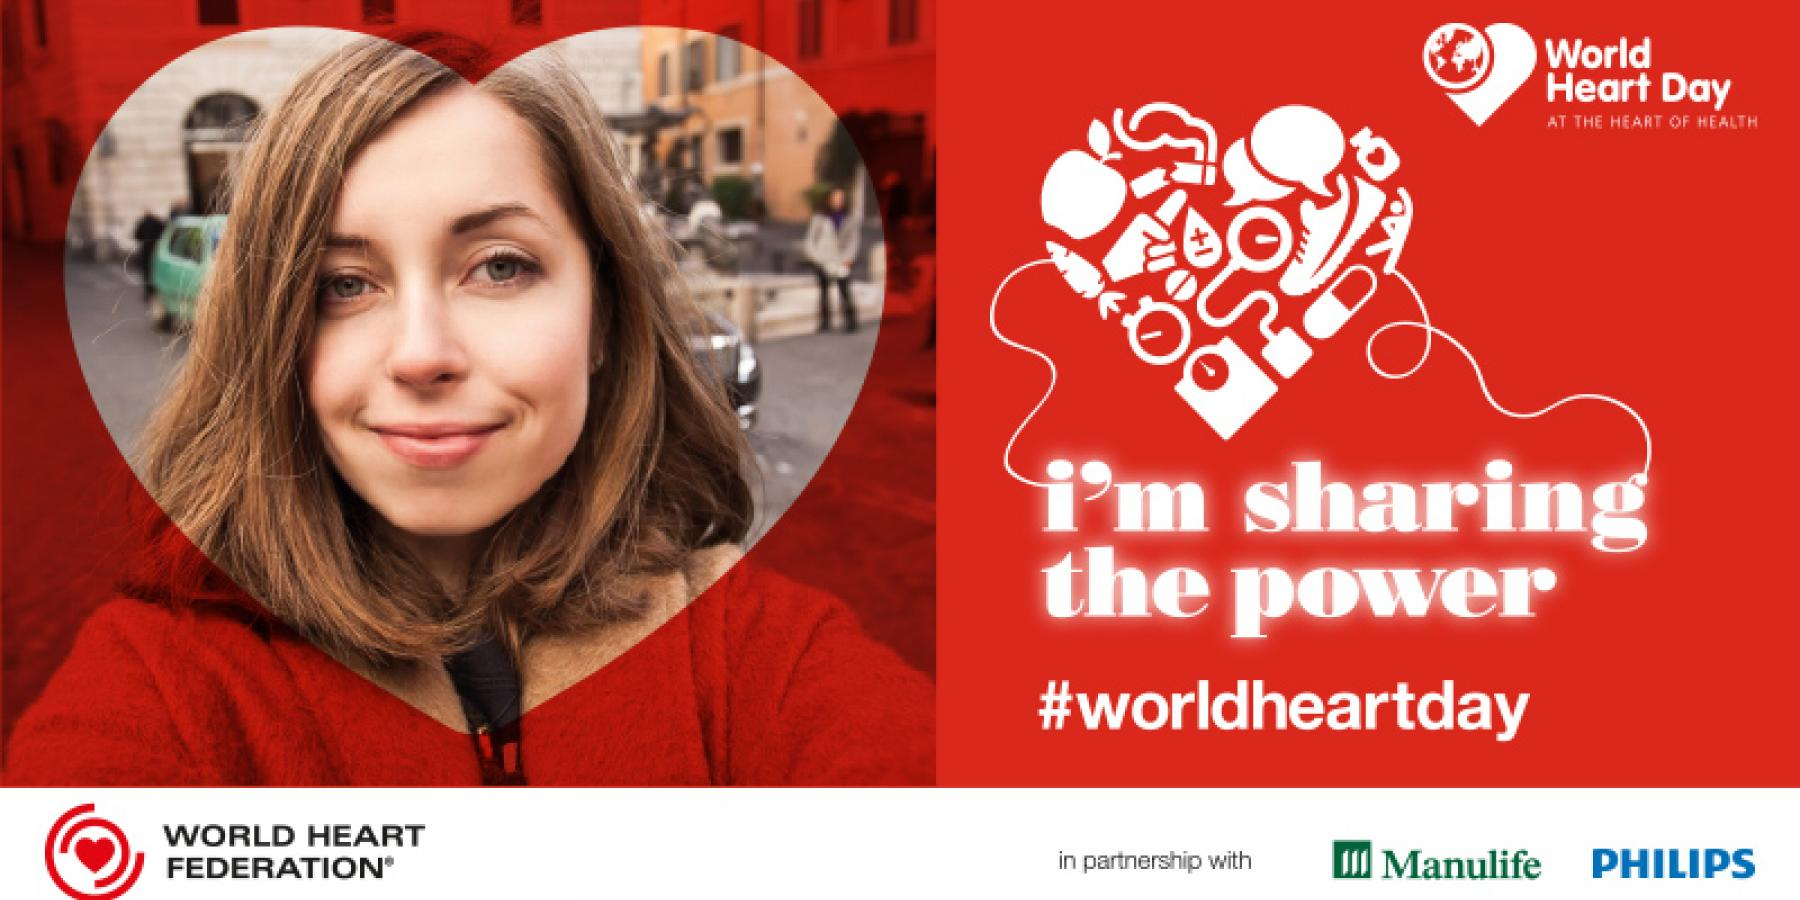 'I'm sharing the power' banner - World Heart Day 2017